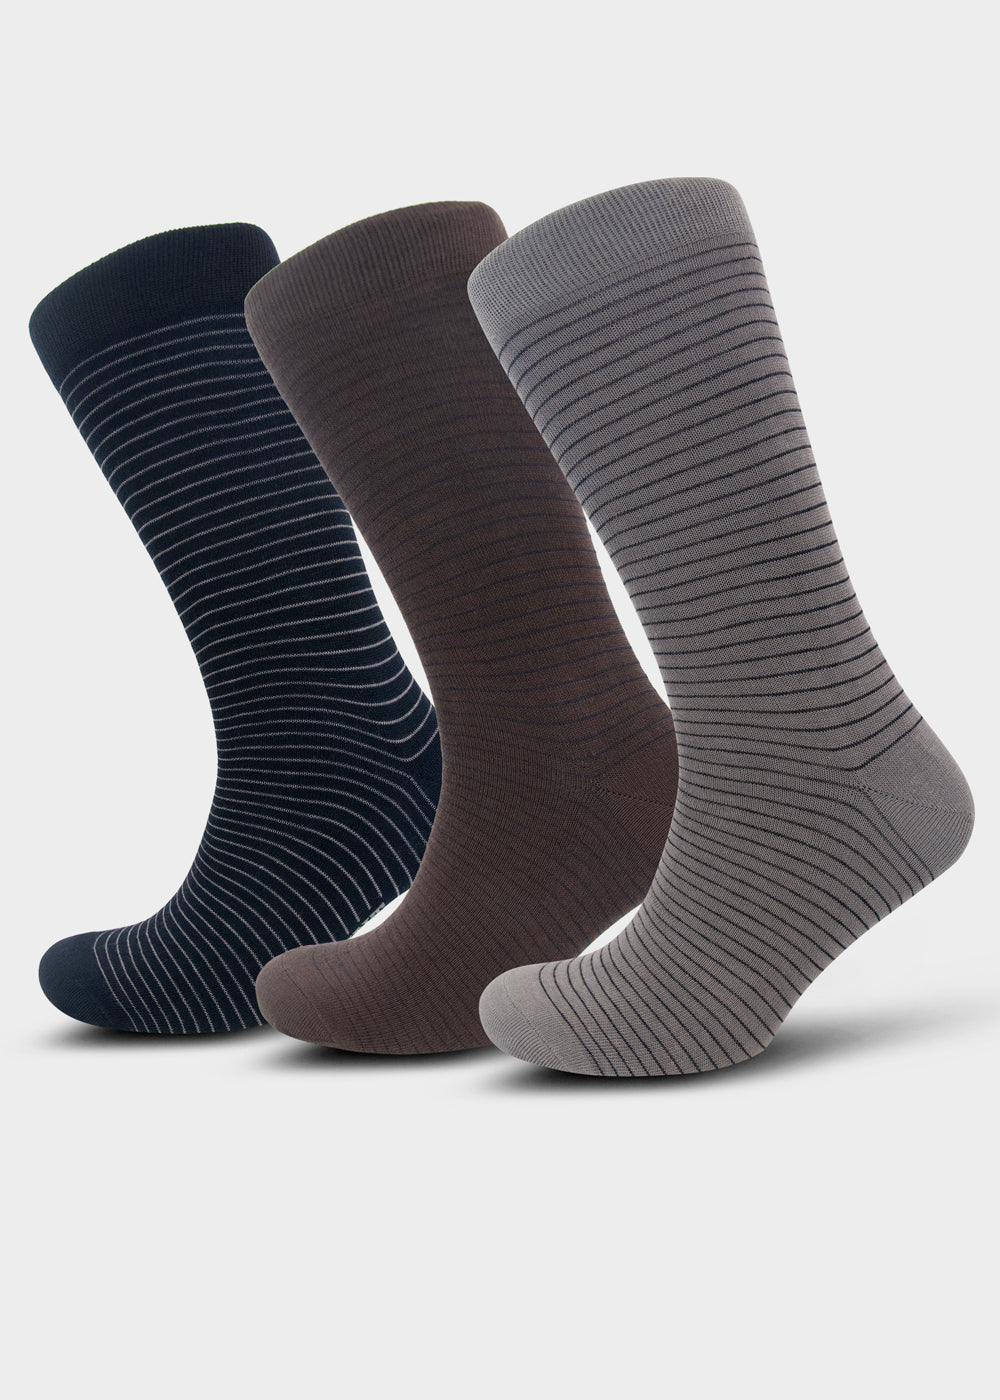 Men's three pack Navy Blue, Brown and Grey Stripe Socks